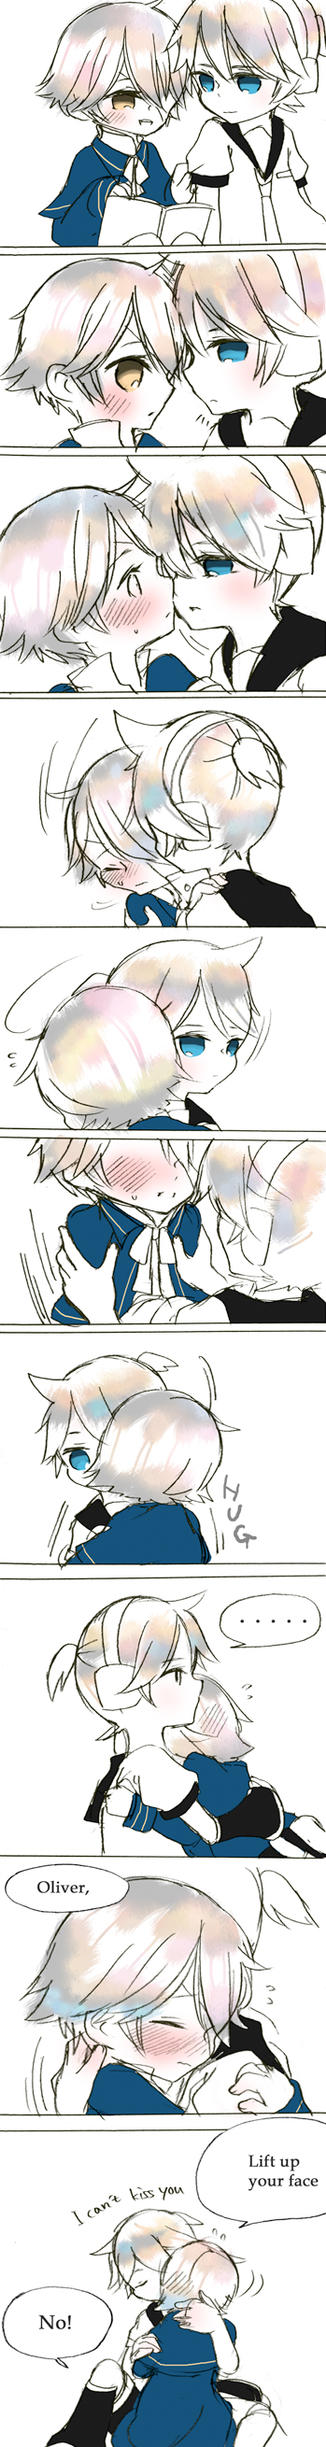 Len want to kiss Oliver by Miza3